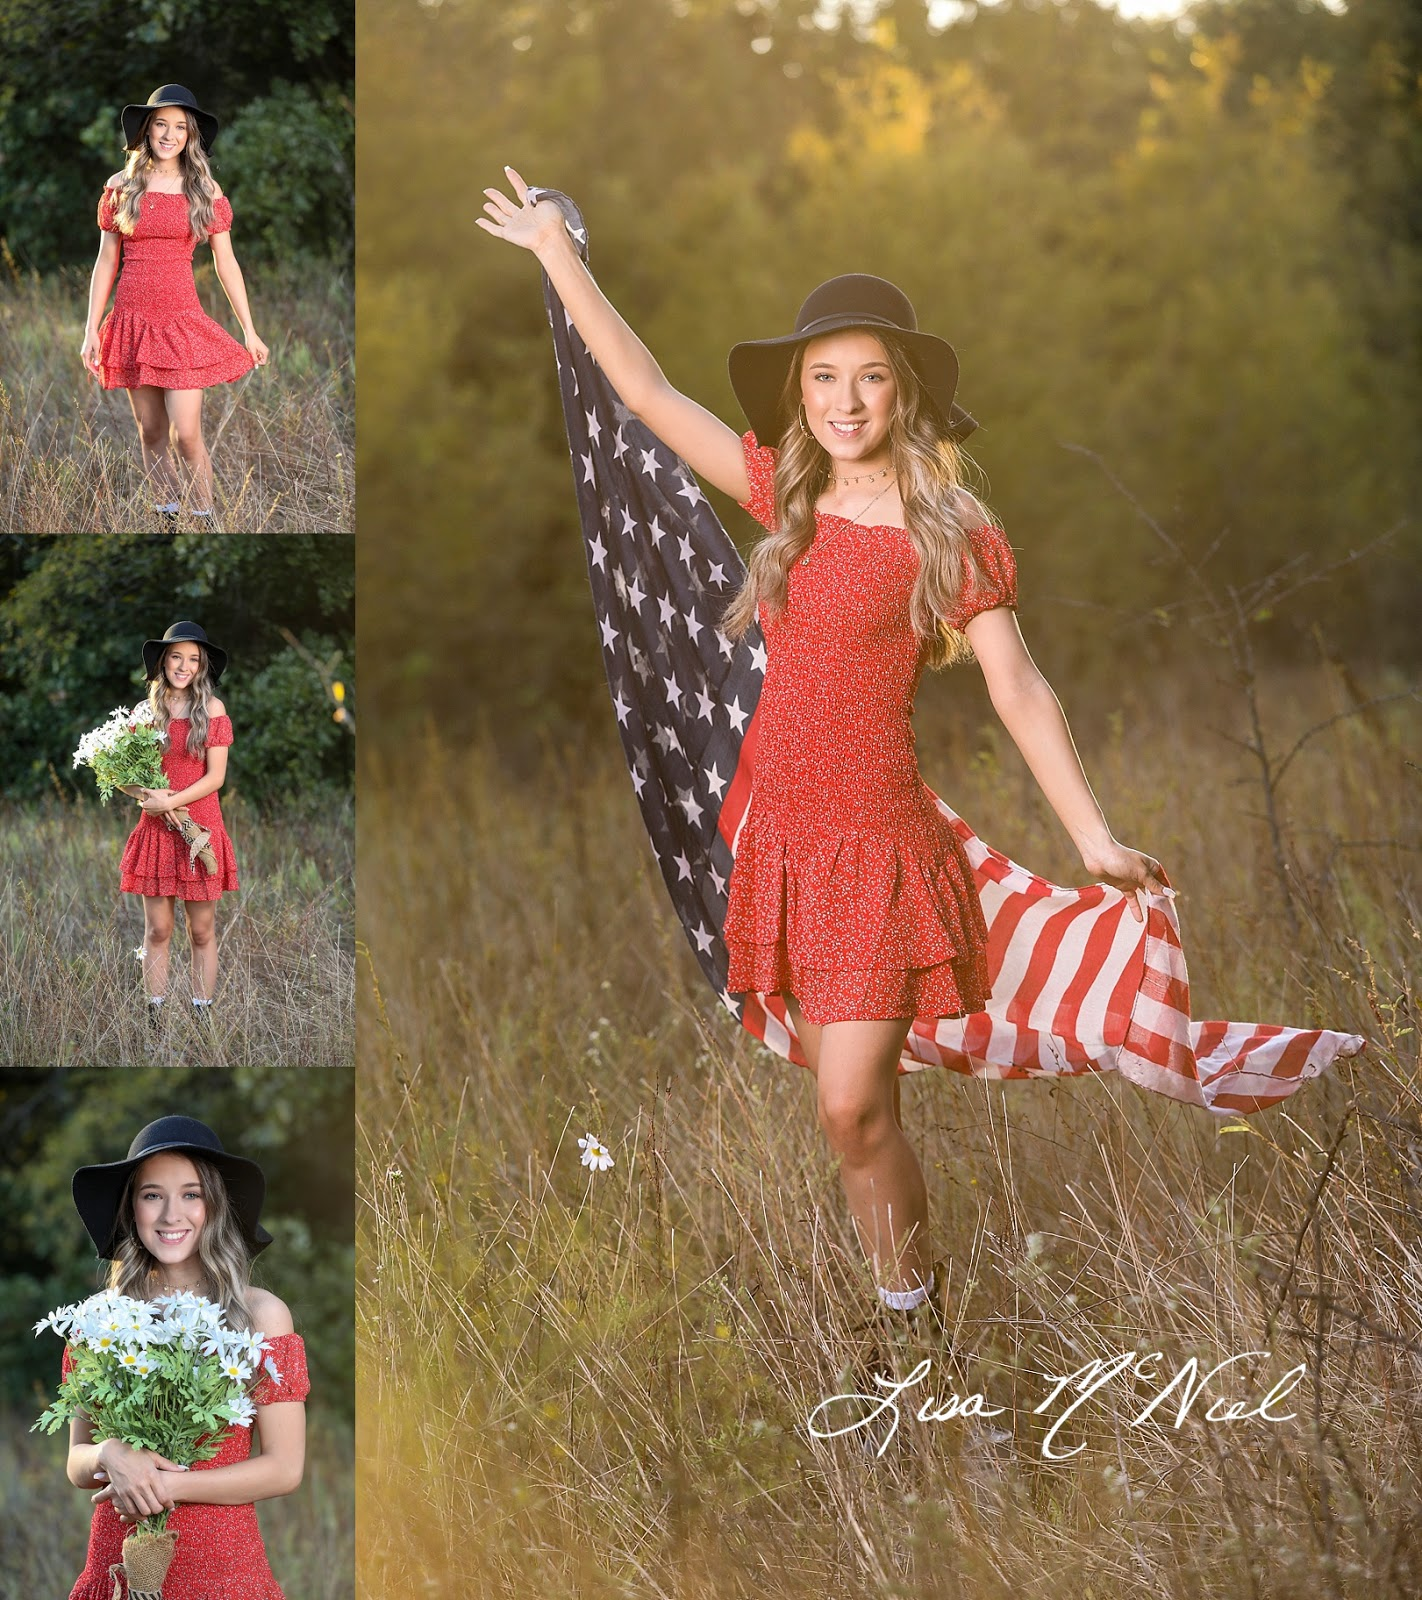 cute teen girl in red dress in field with flag scarf